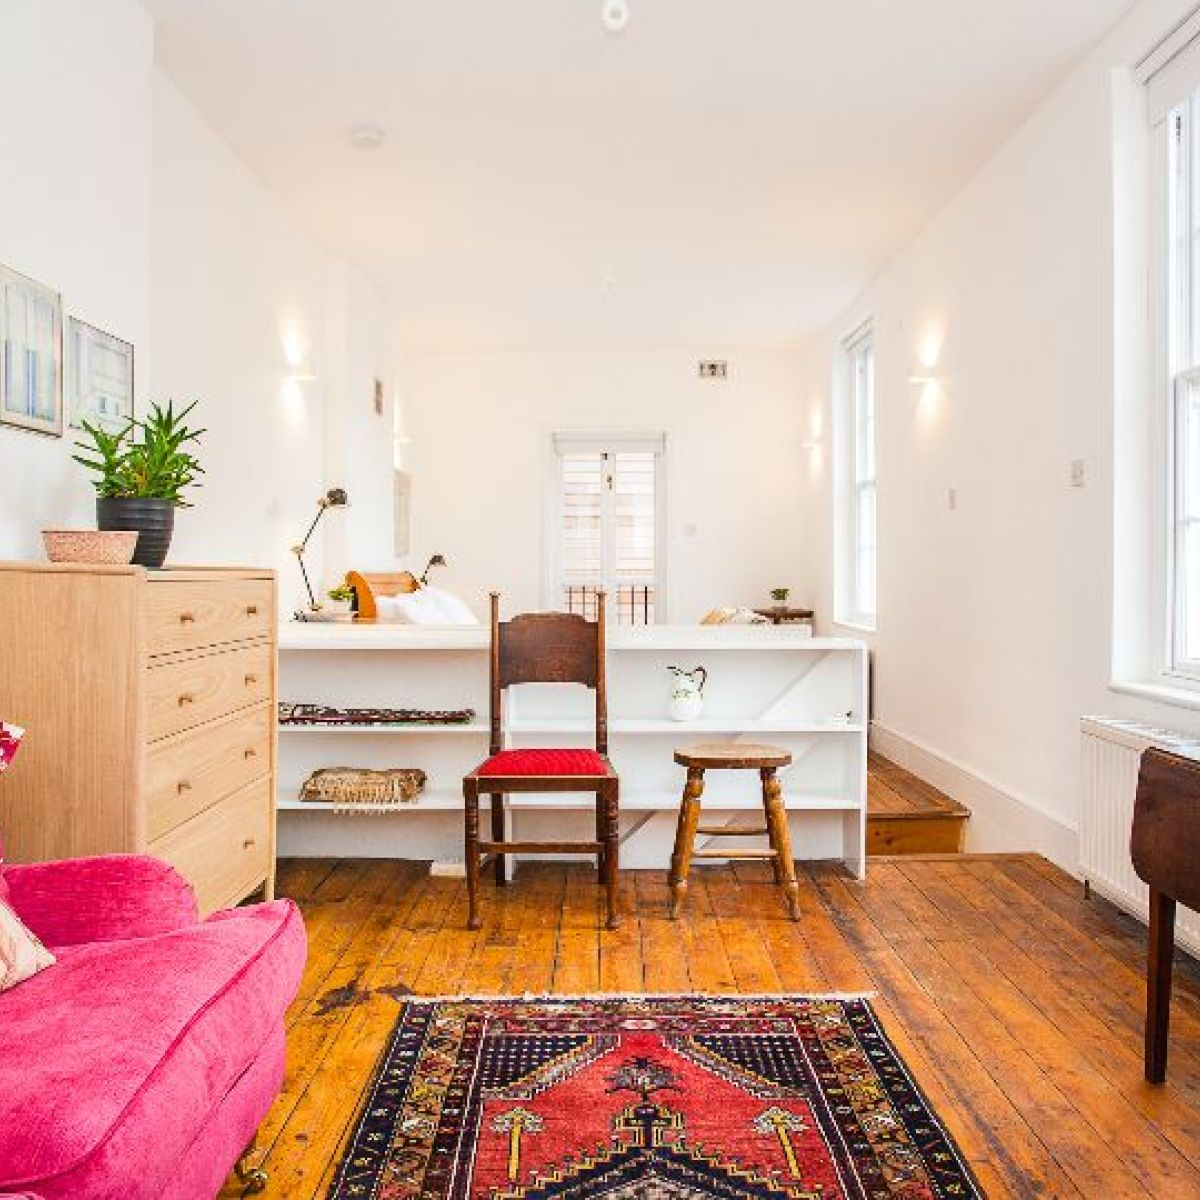 A crash course in making money through Airbnb